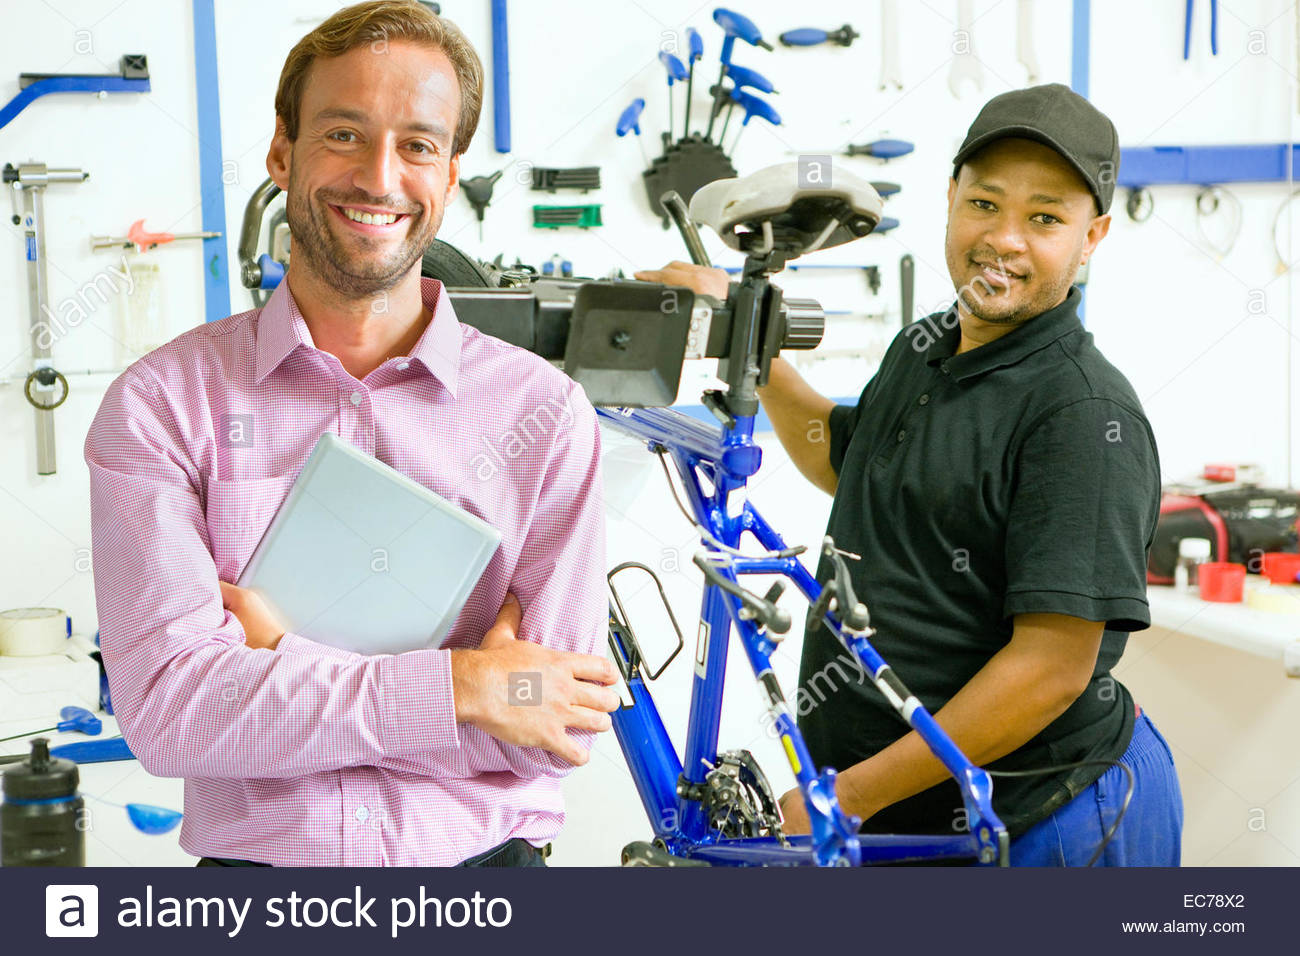 Portrait of store owner and cycle technician in workshop - Stock Image